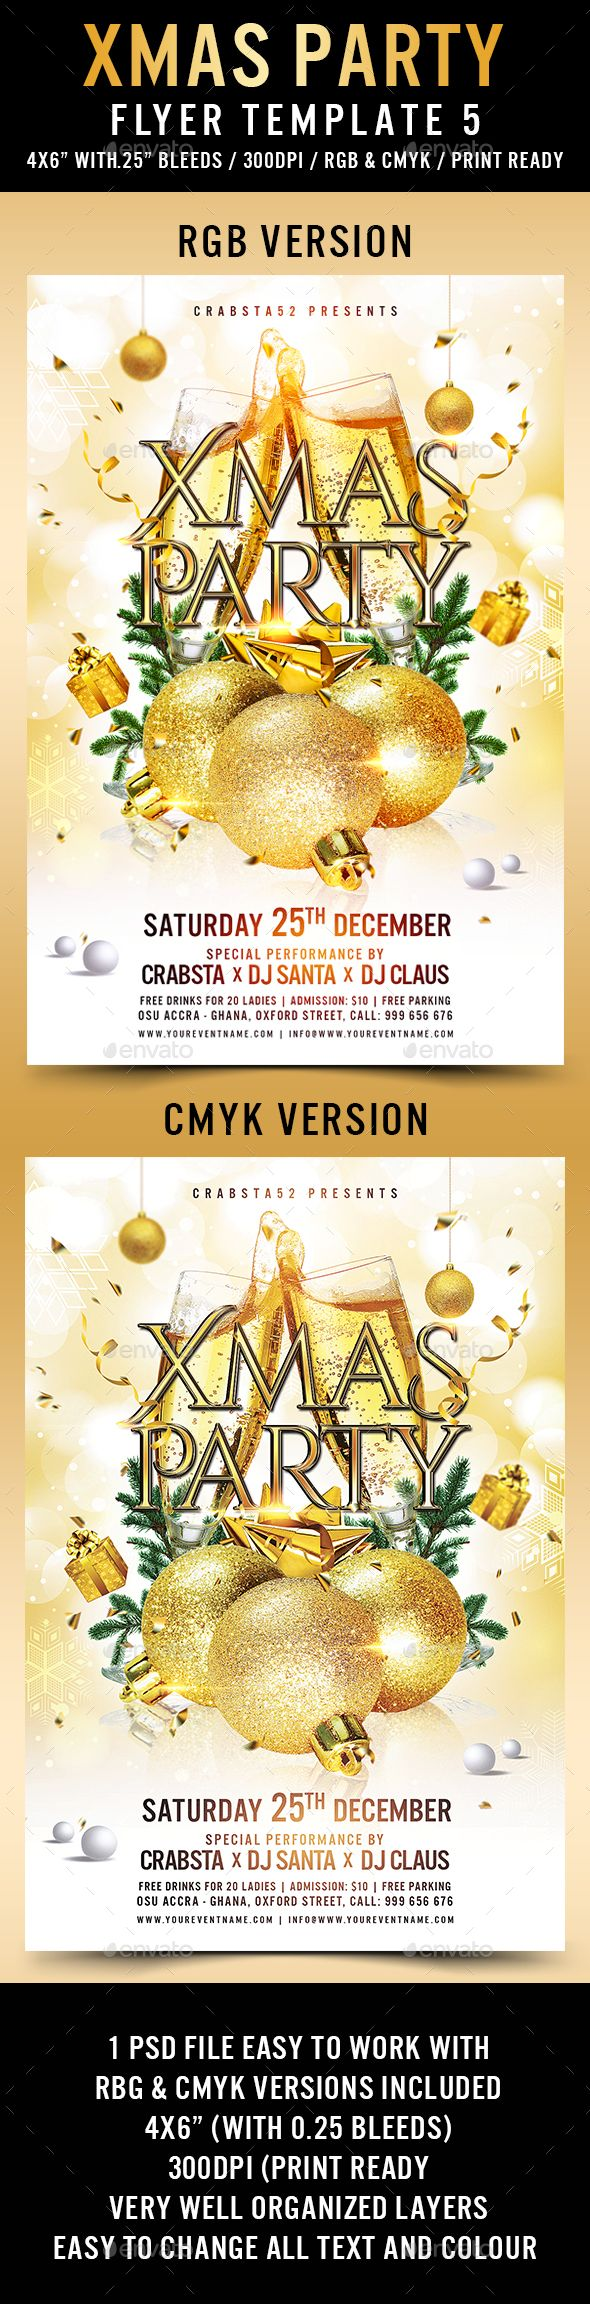 best images about holidays flyer design xmas party flyer template 5